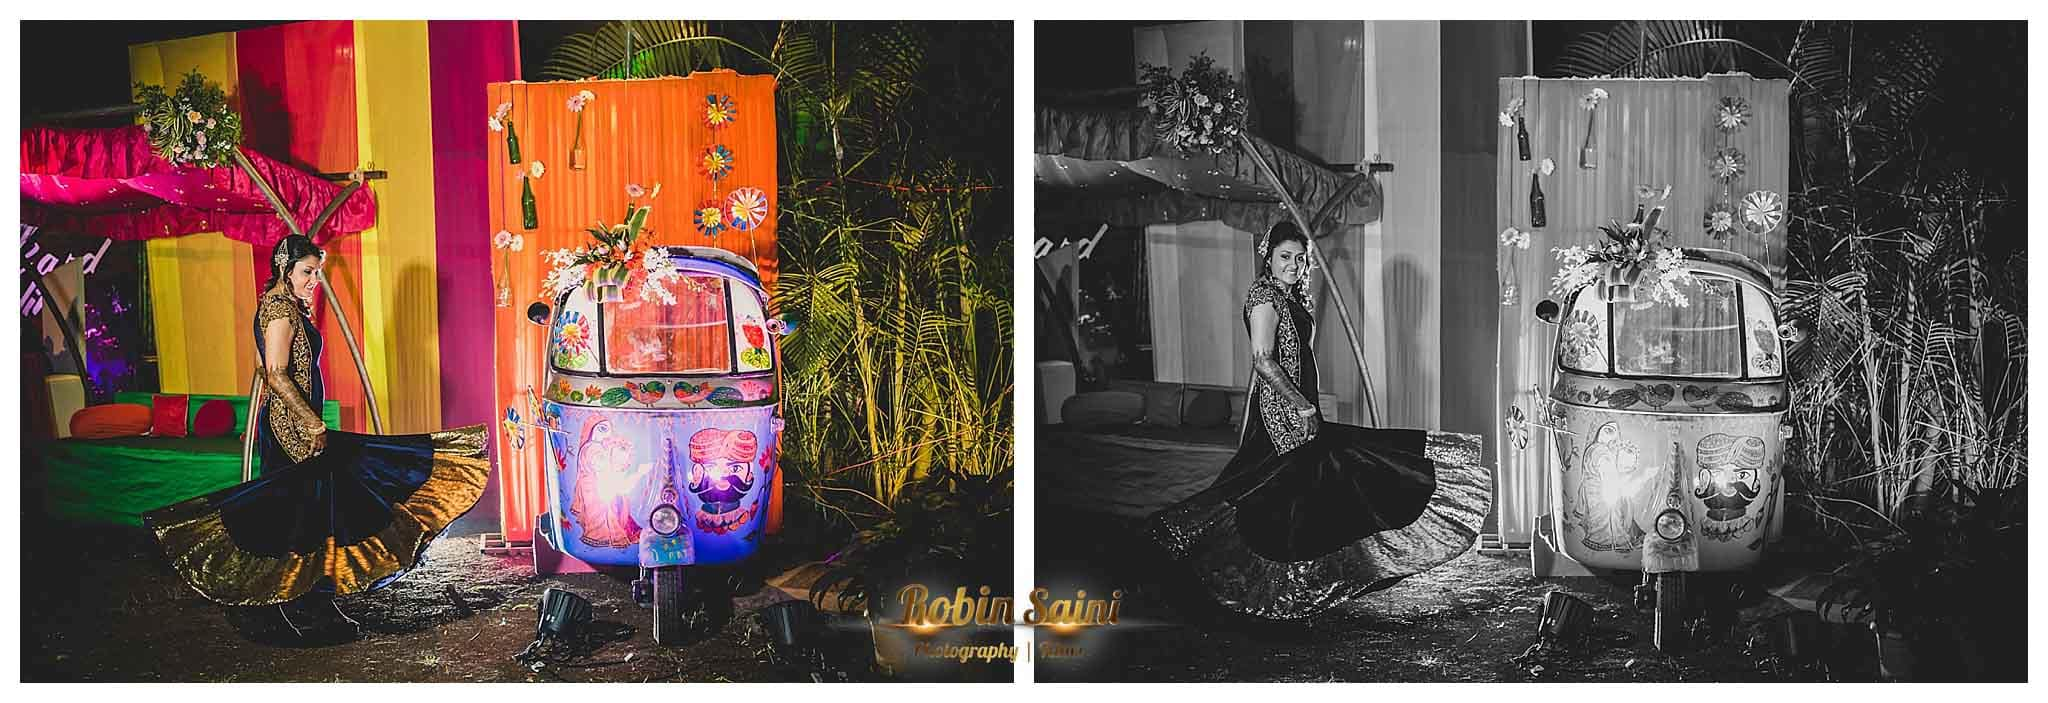 different wedding decoration:robin saini photography